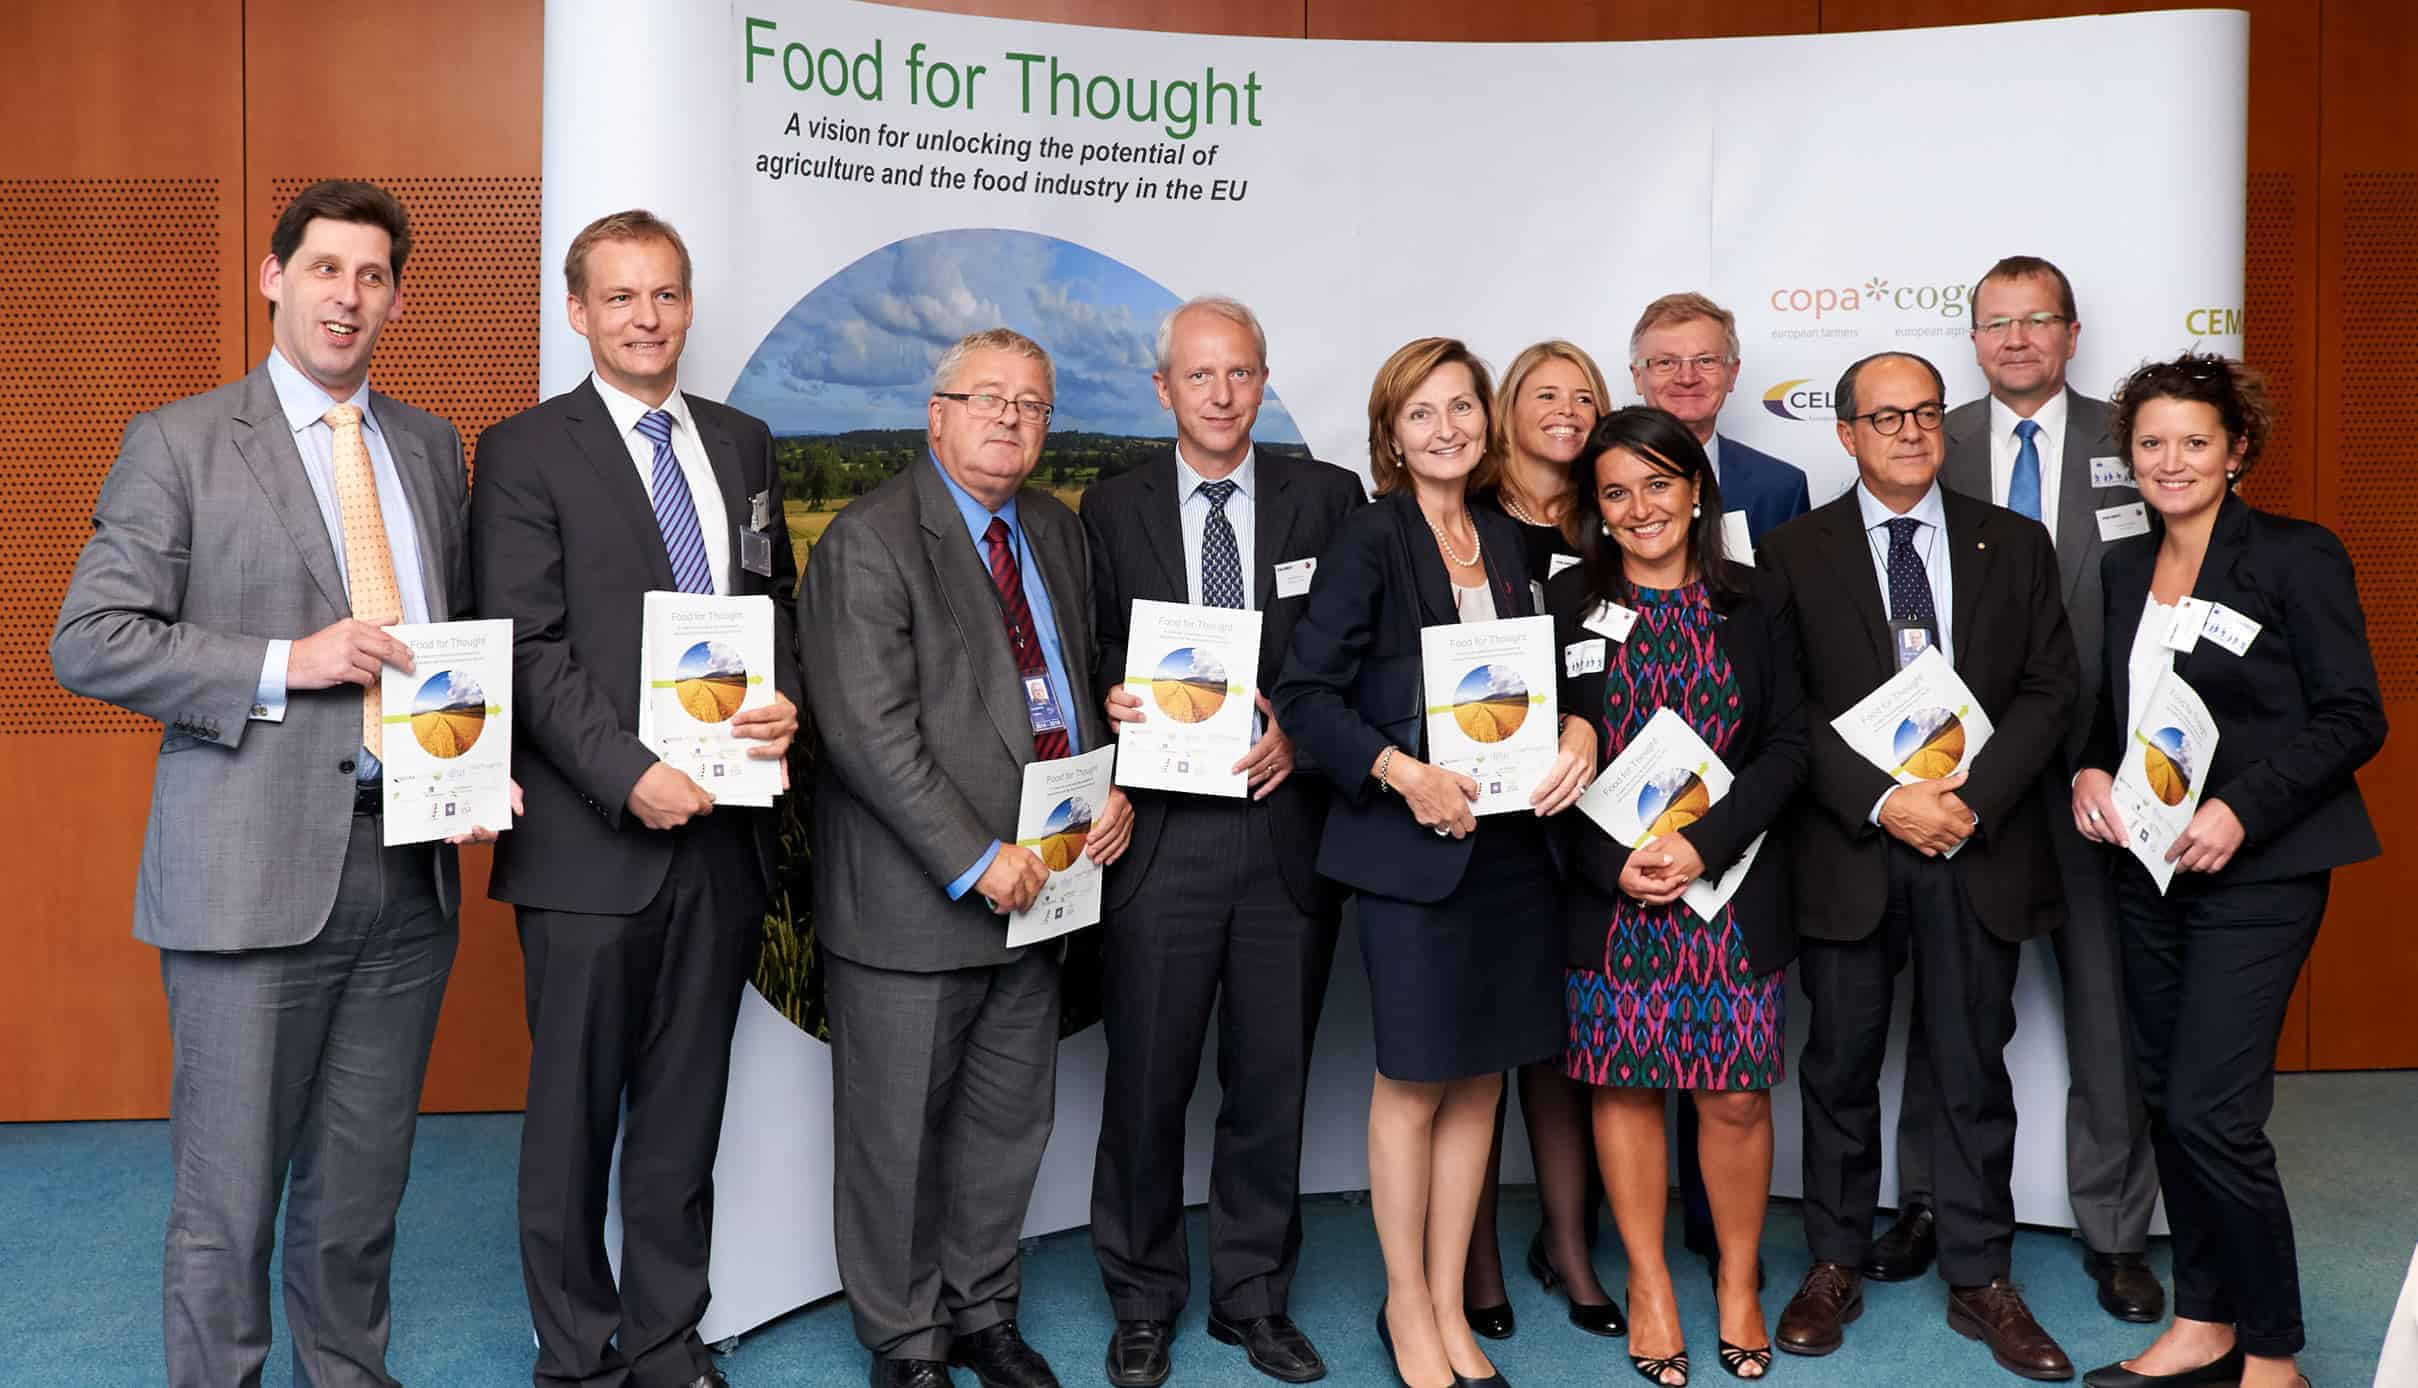 AFCC - Food for Thought presentation